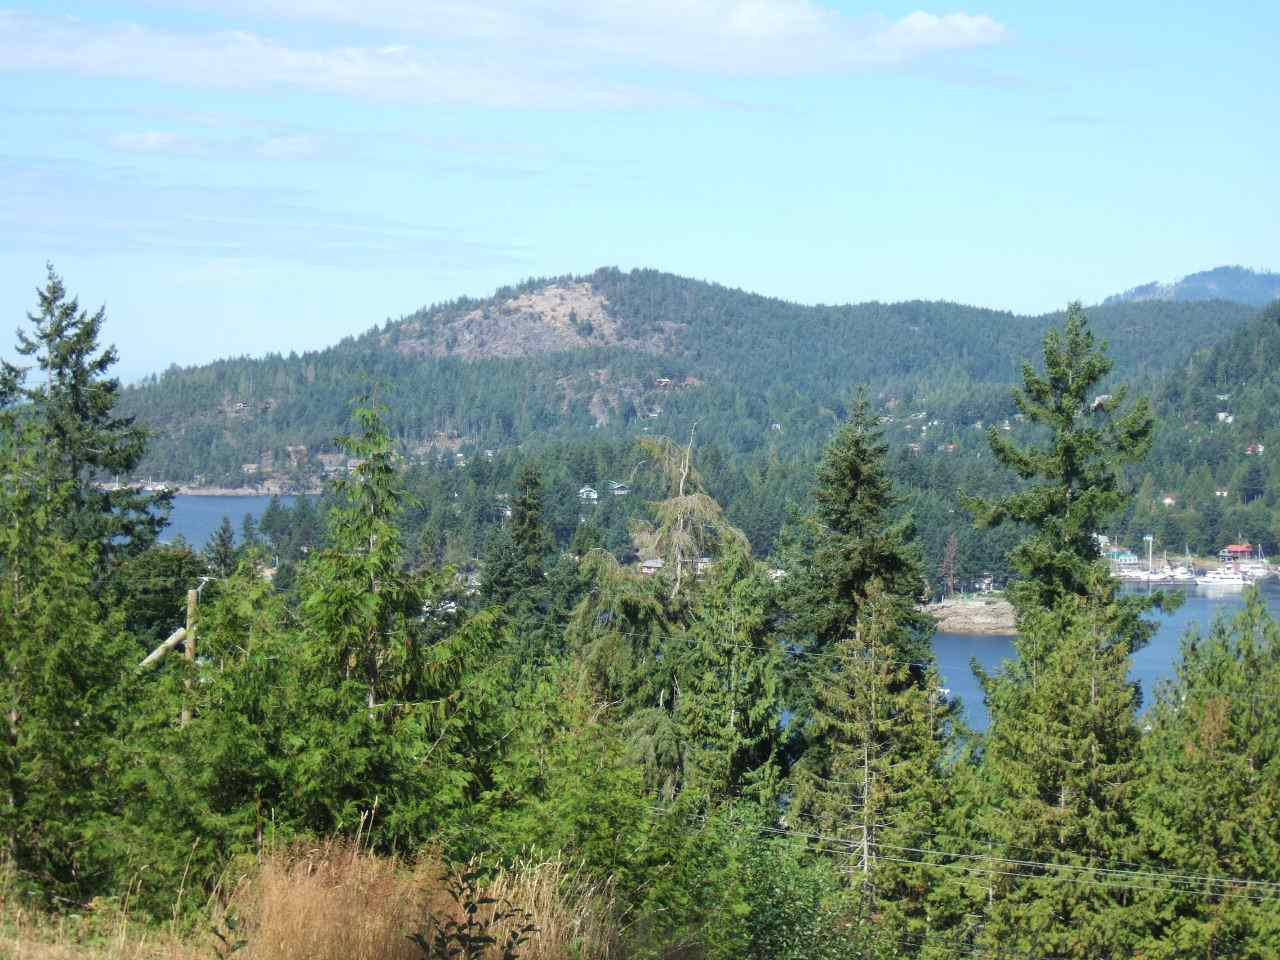 Residential Building Lot - Cecil Hill Road Development in the Heart of Madeira Park (Pender Harbour Area). Freehold - fee simple ownership (no strata fees or rules!). Paved access road with hydro/water to the lot lines & building sites partially prepped. Lot 16 has a peek of ocean view into Pender Harbour. GST applies to Purchase Price.